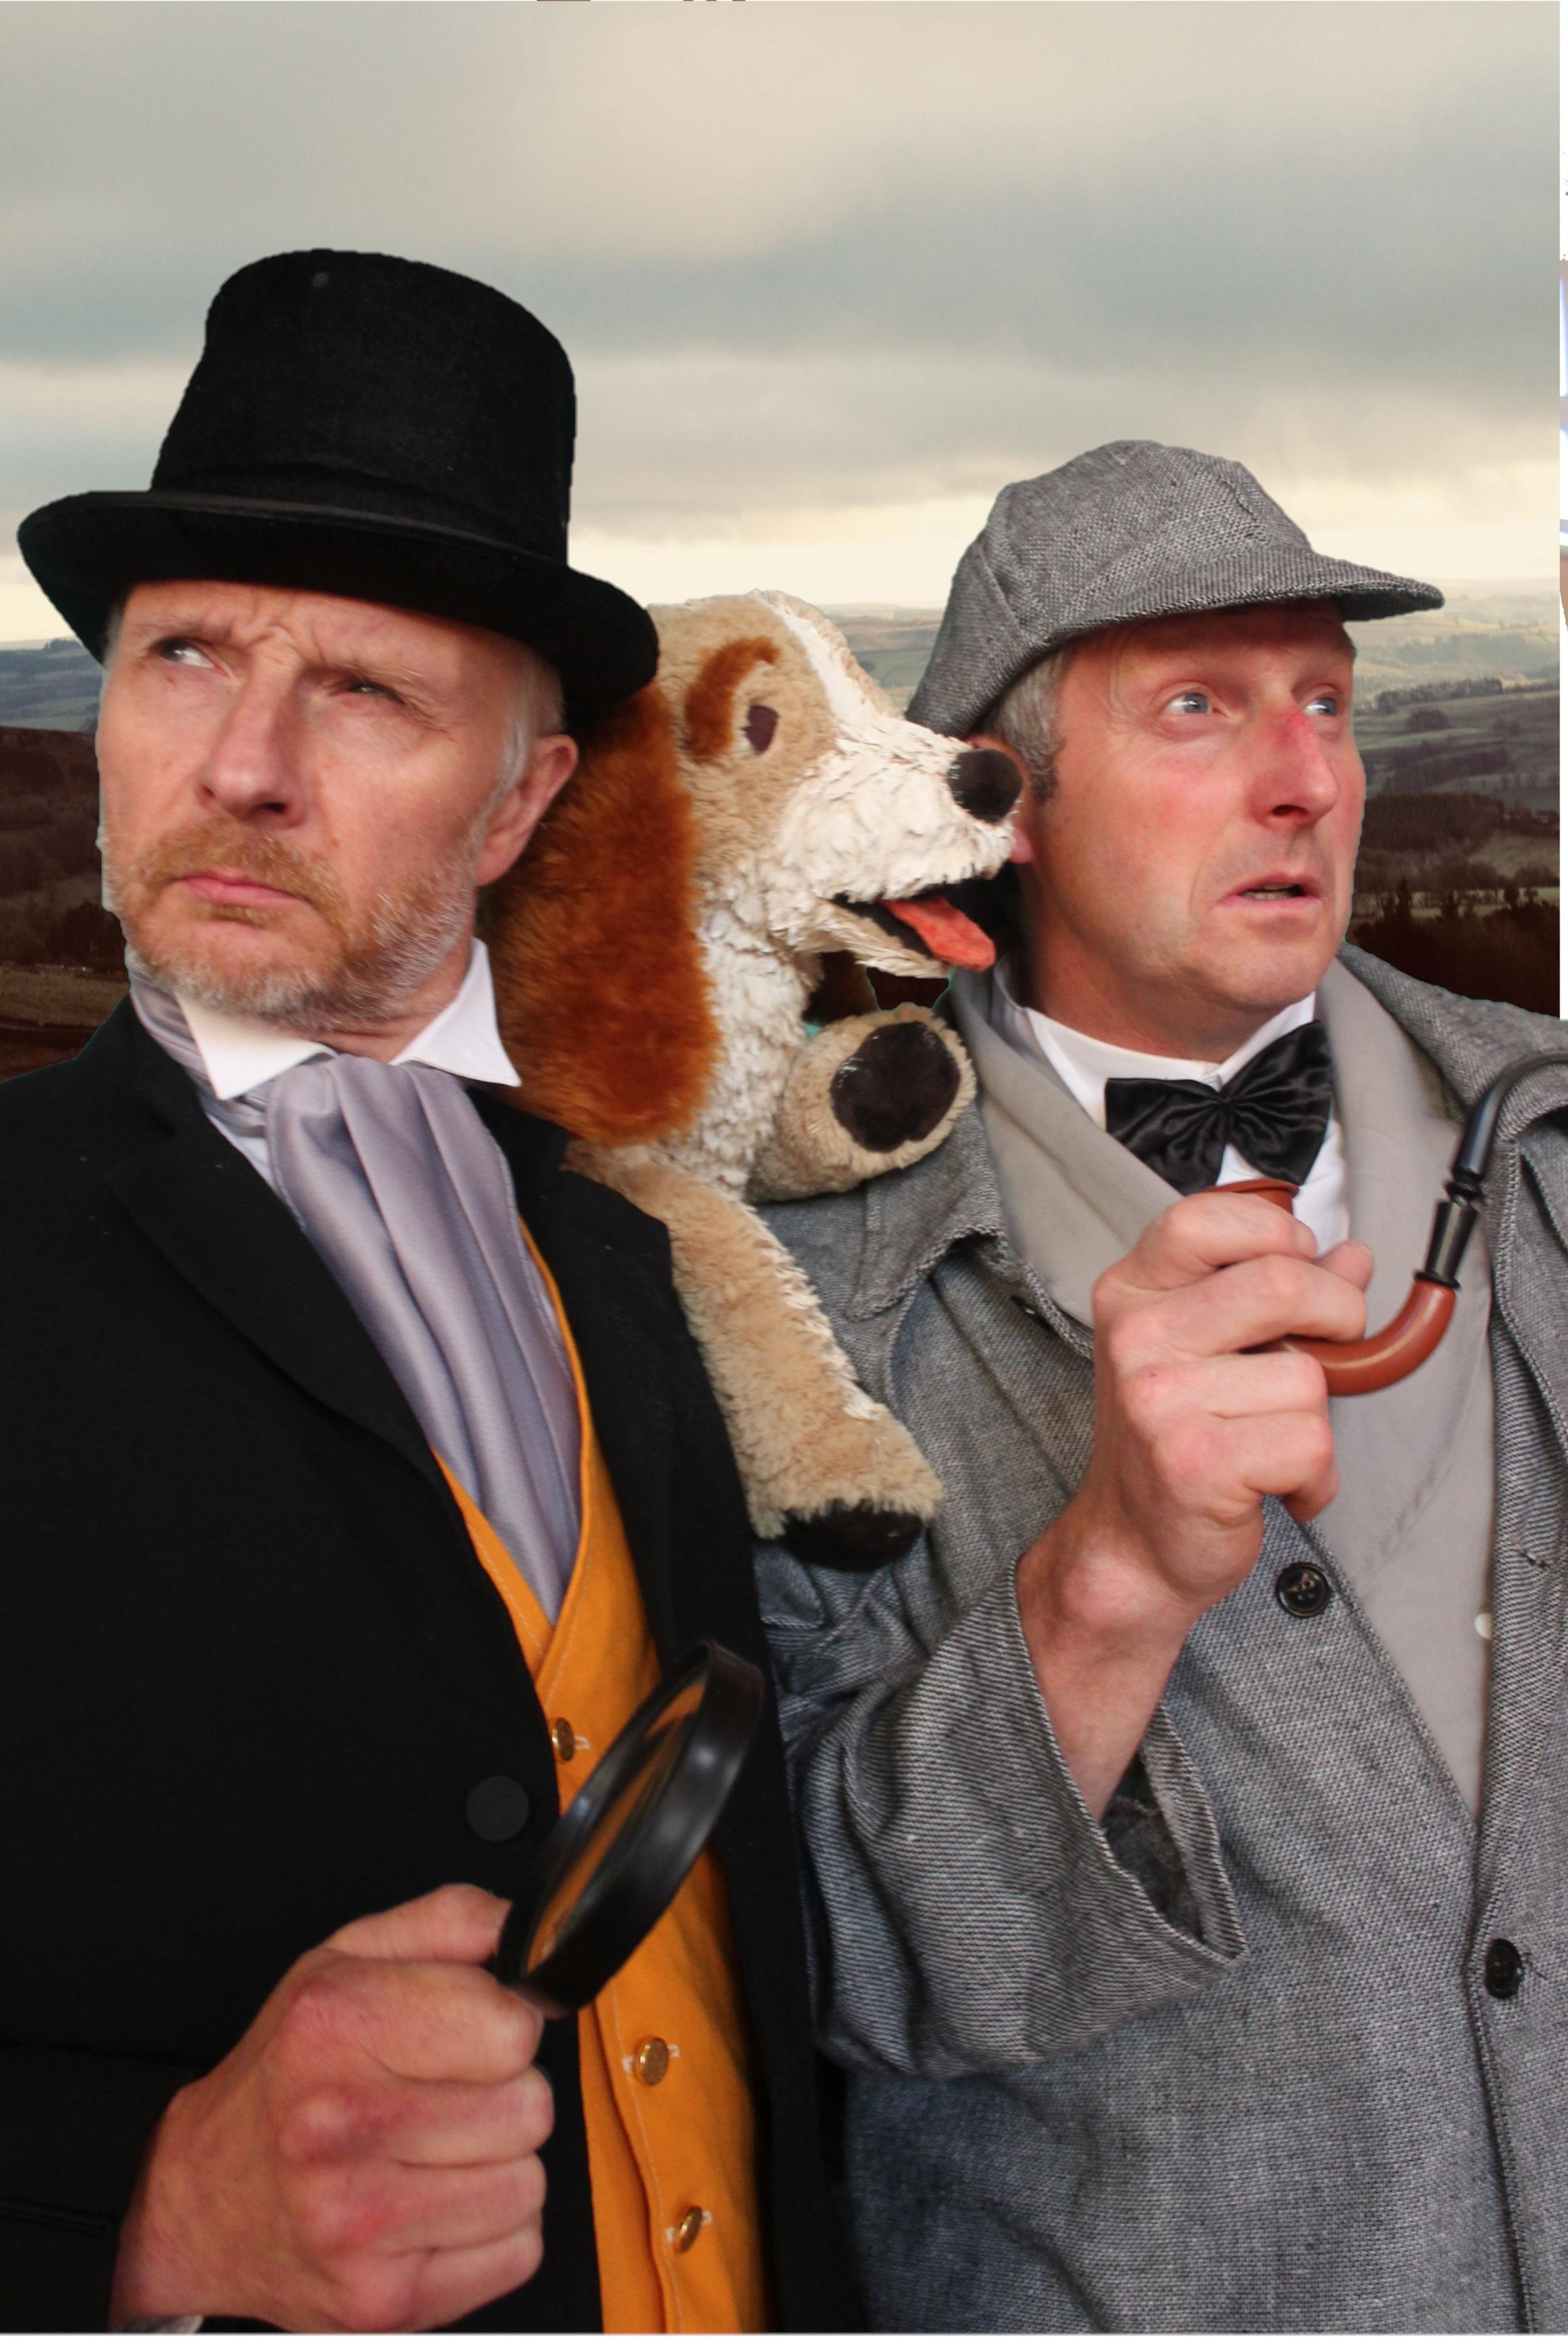 The Queen's Hall Theatre Club actors David Nixon as Sherlock Holmes and Robin Jowett as Doctor Watson, who will be taking the stage this month in a performance of The Hound of the Baskervilles.